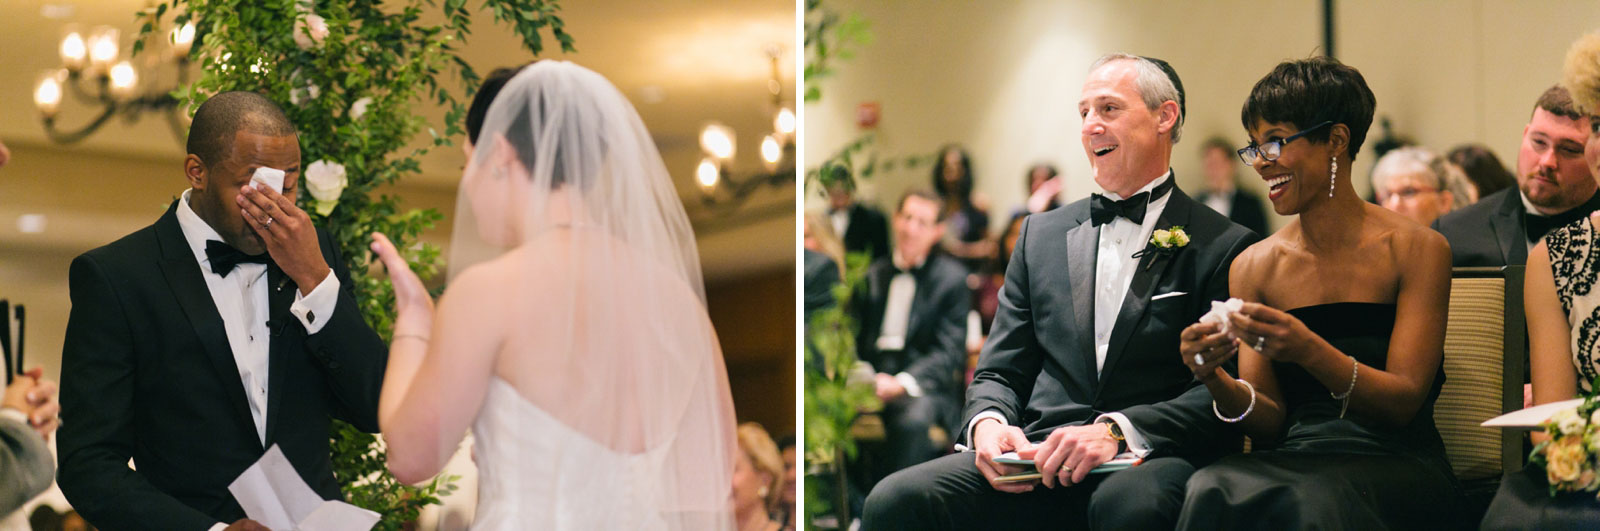 groom getting emotional while saying his vows to his bride, groom's family laughs and cries with him